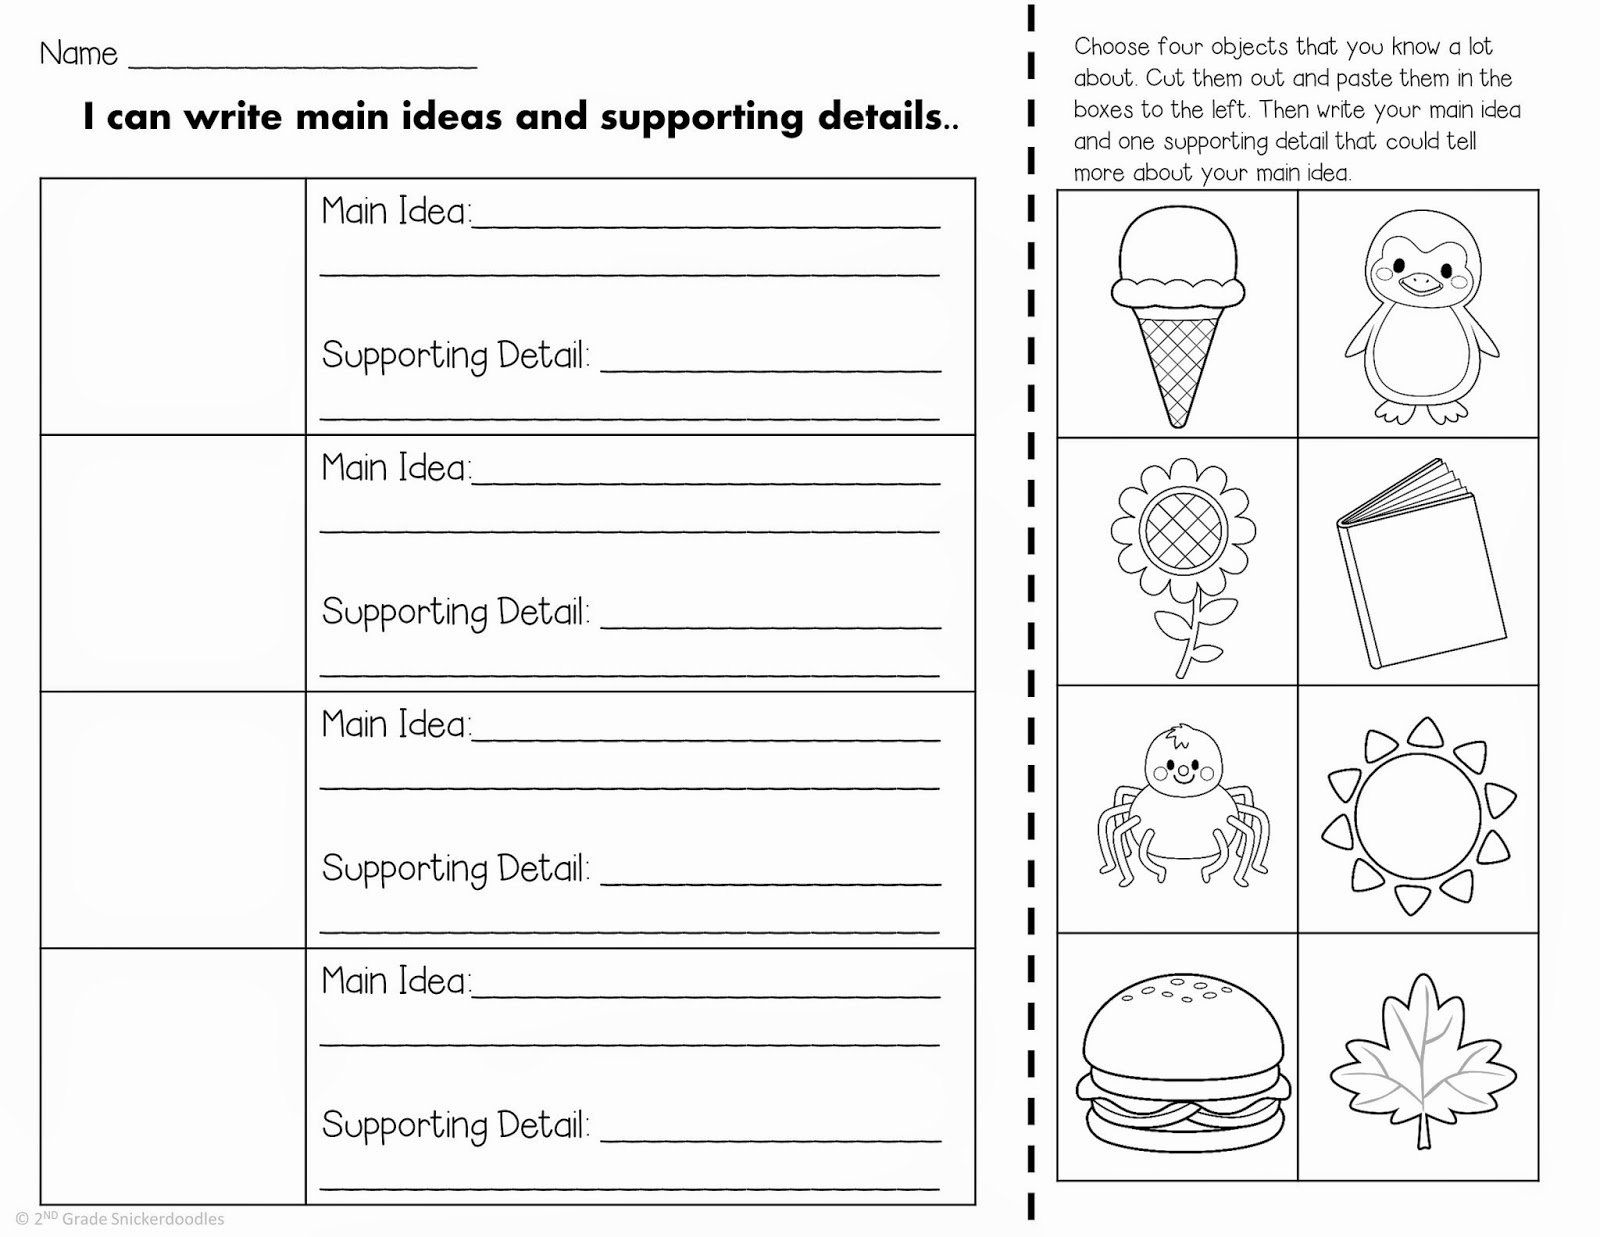 50 Main Idea Worksheet 2nd Grade